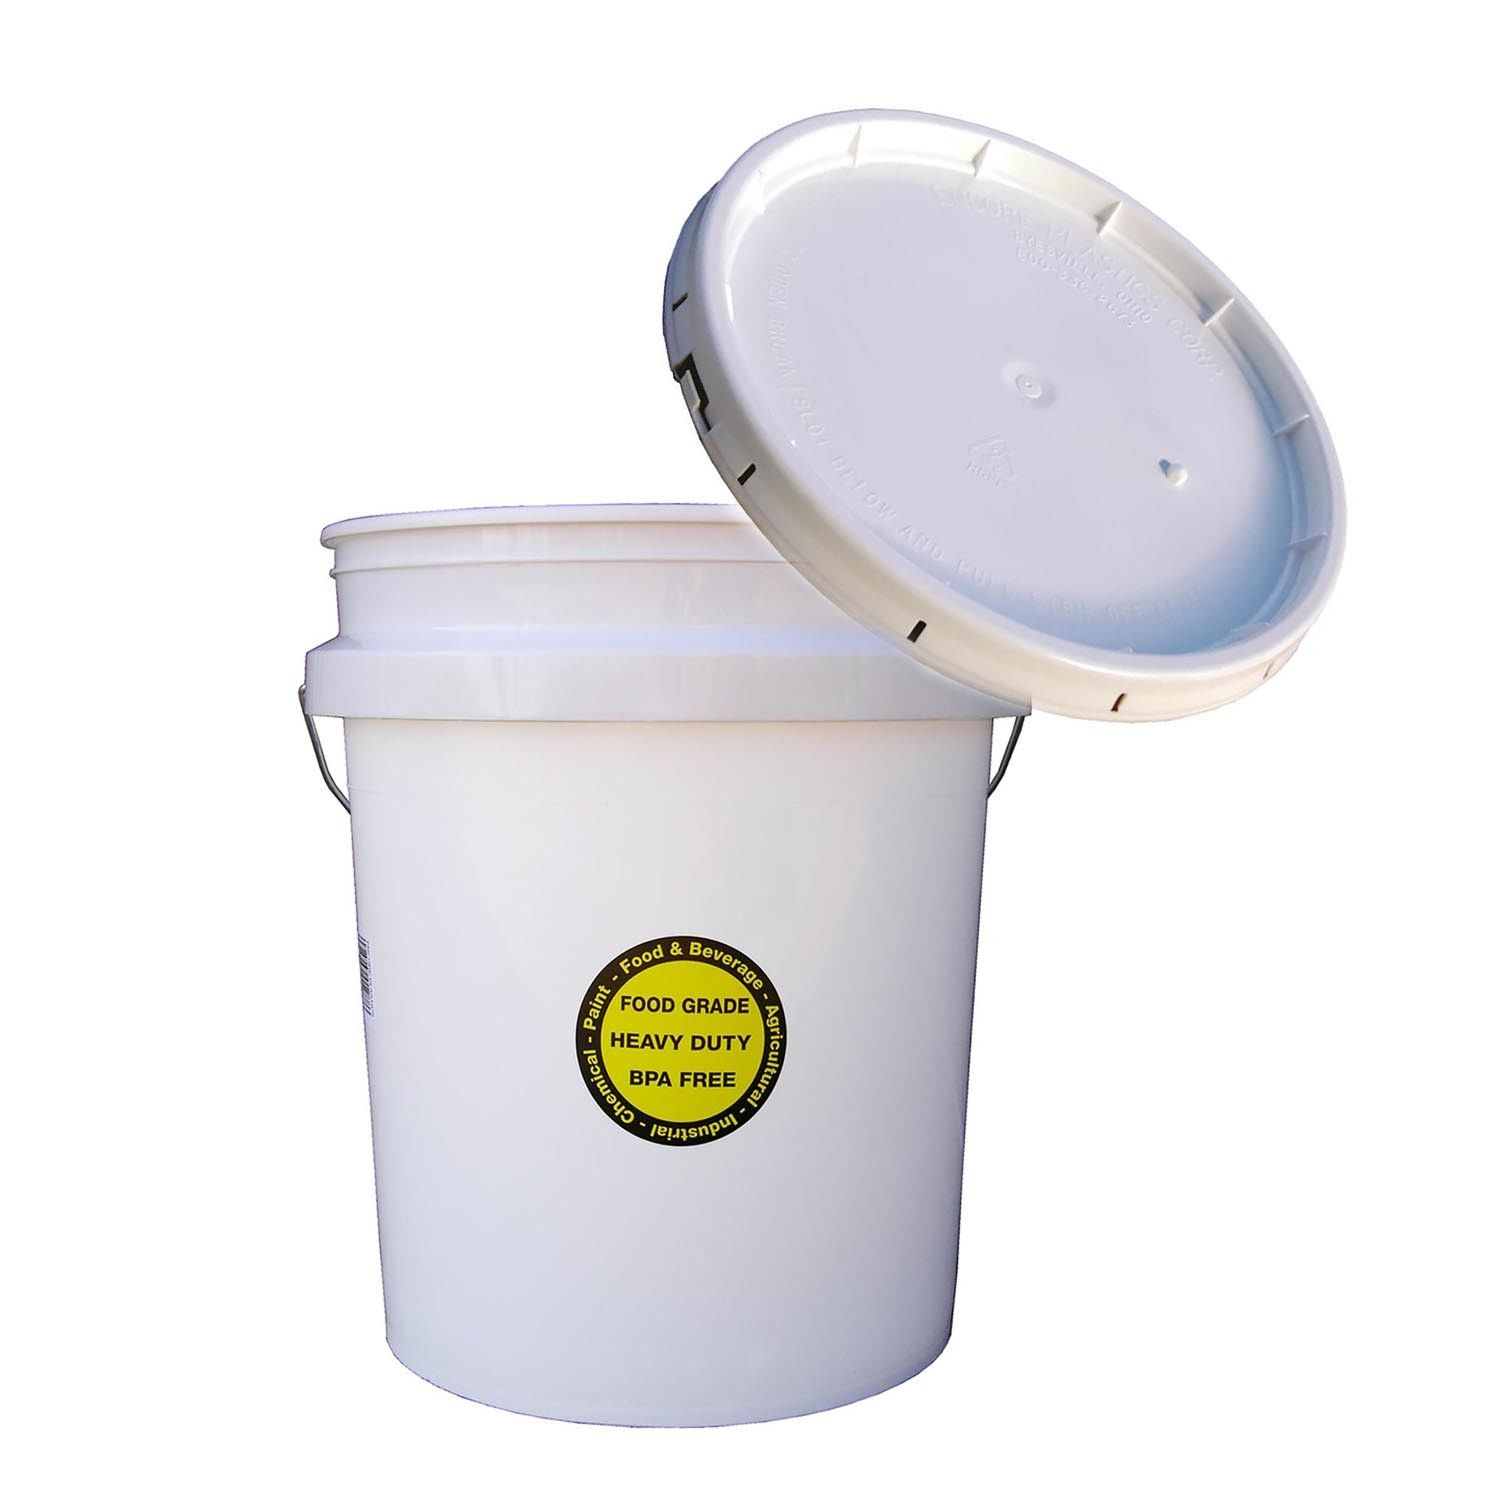 COMMERCIAL PLASTIC BUCKET LID 5 Gallon All Purpose Food Grade Paint Storage 1